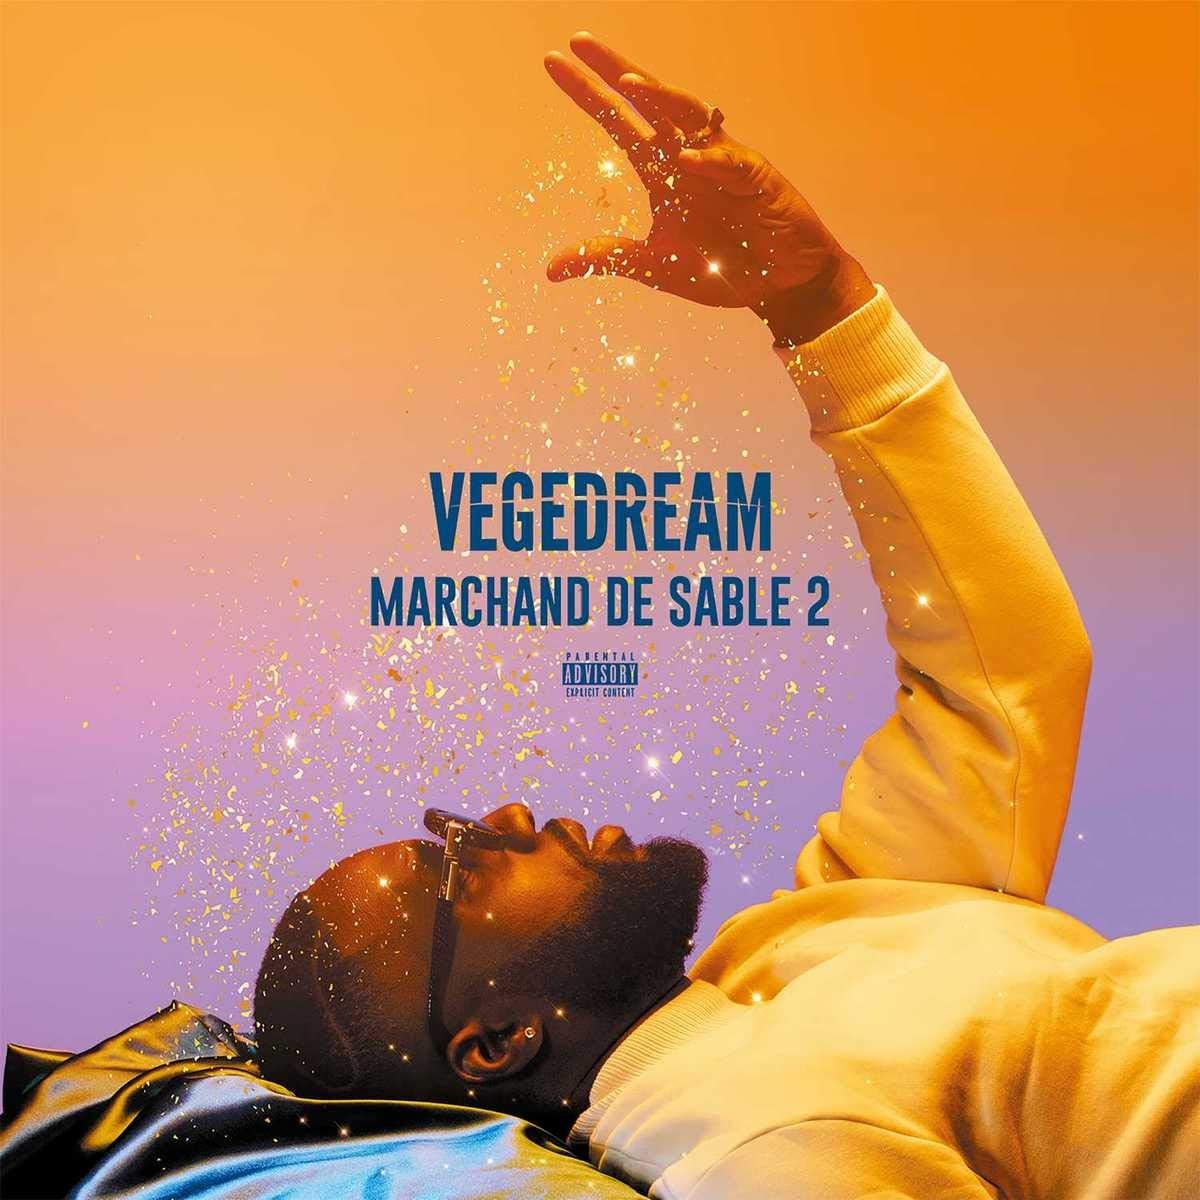 vegedream - marchand de sable part. 4 (du saal)